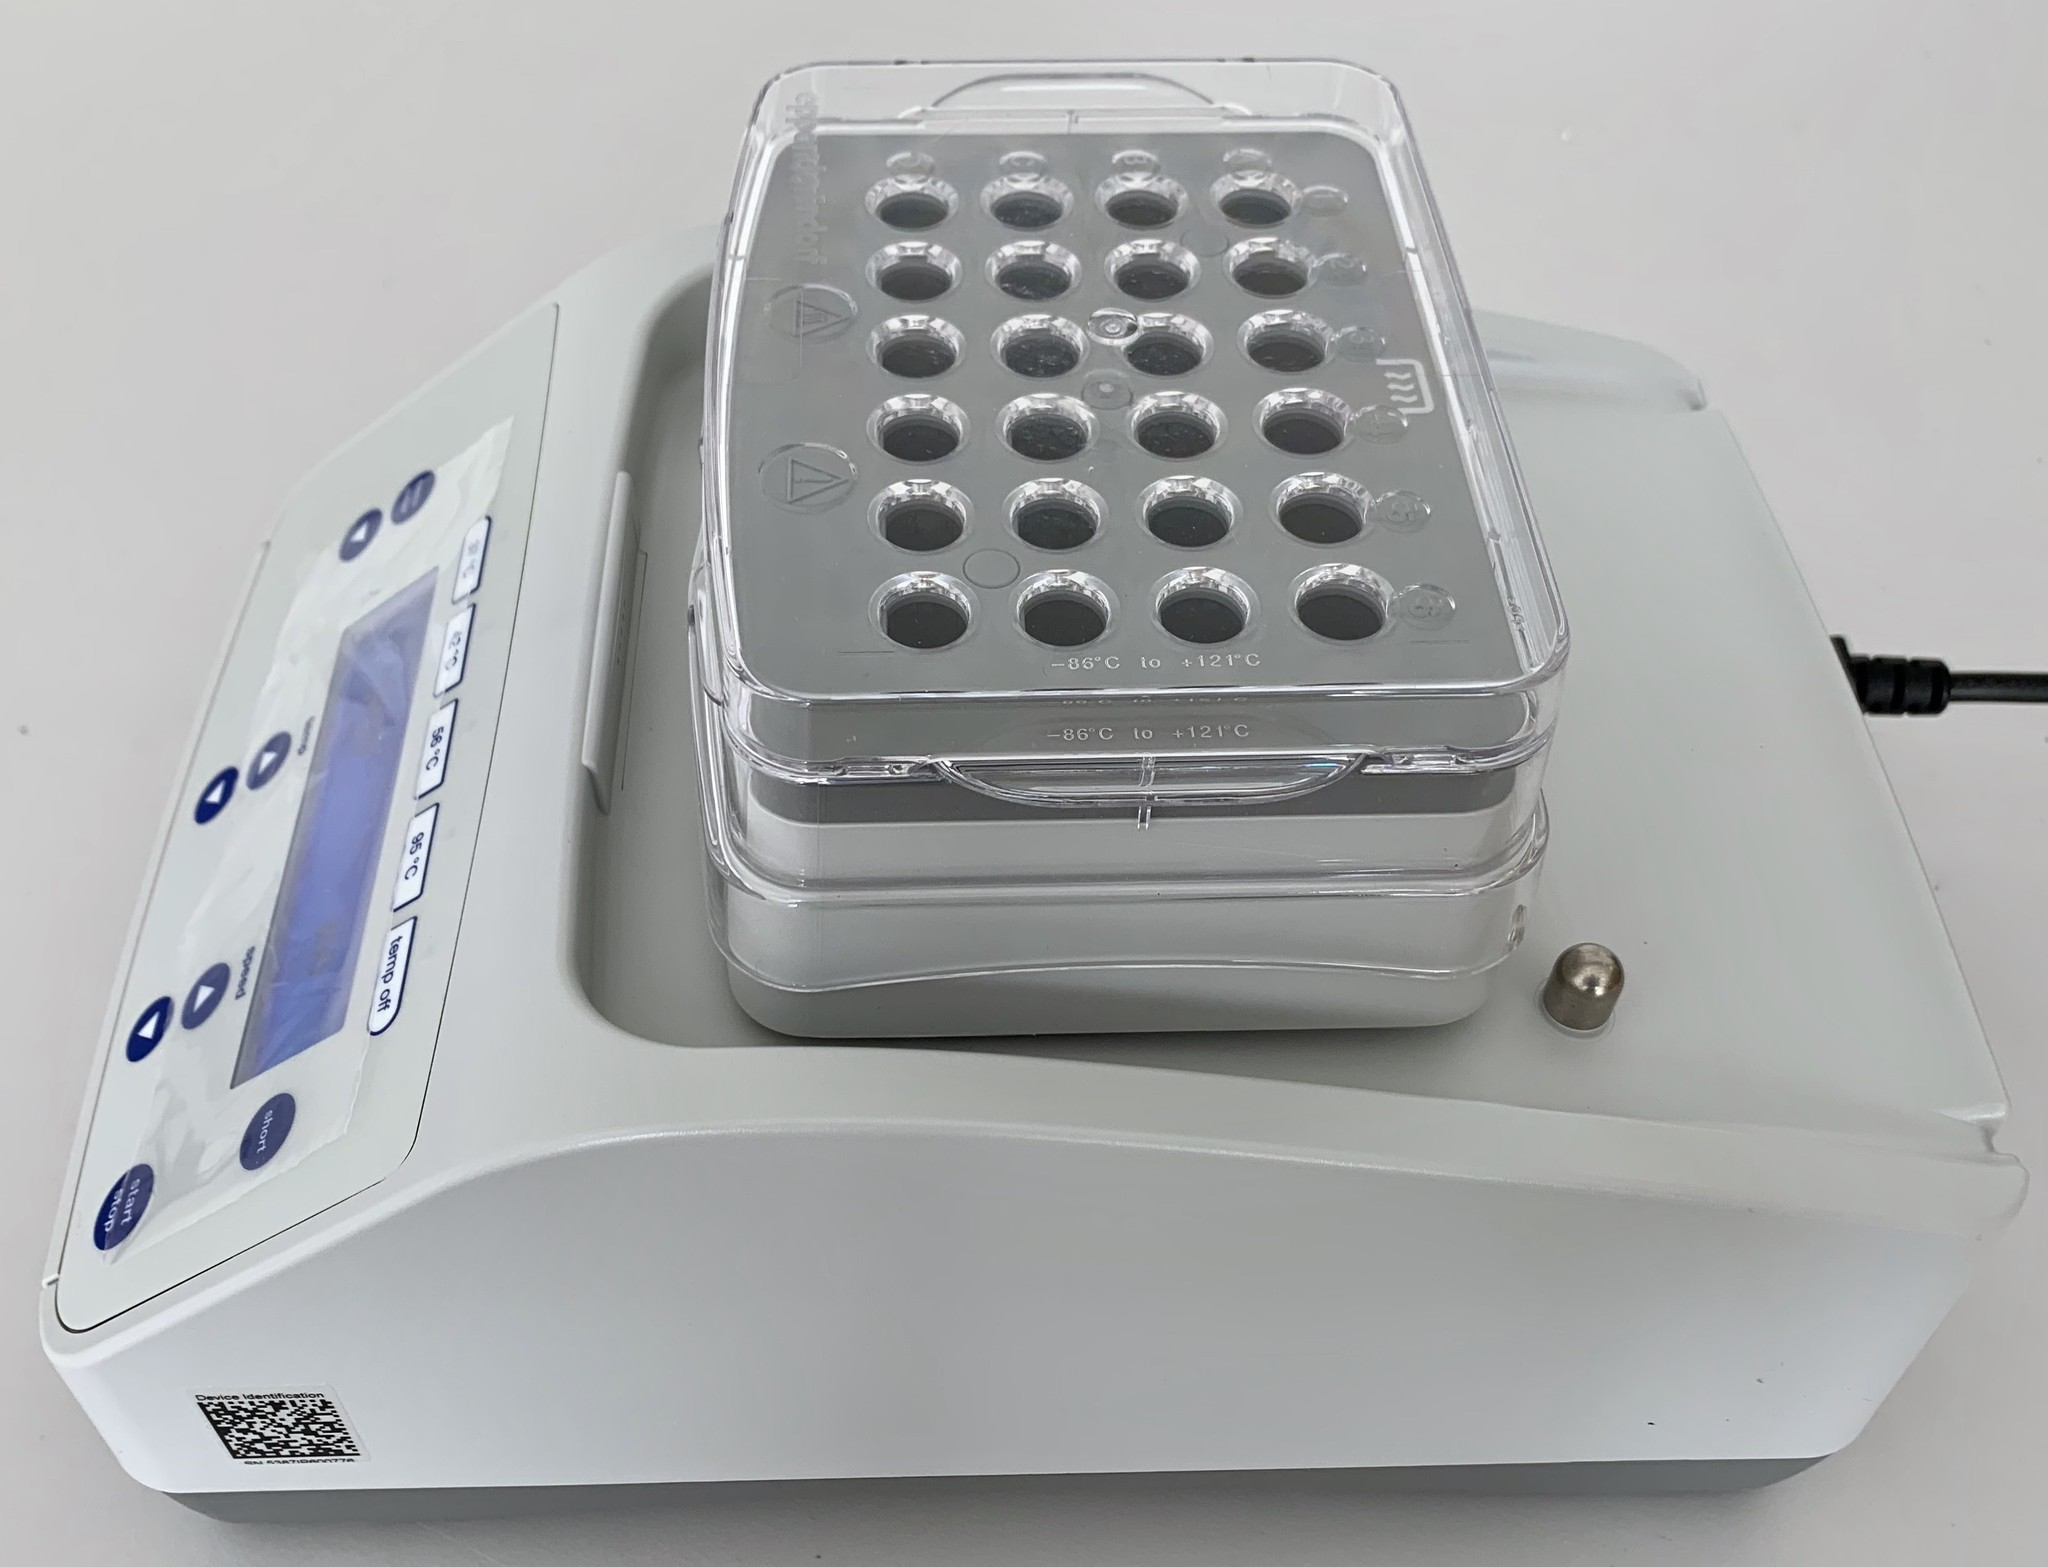 Eppendorf Eppendorf ThermoMixer F2.0 with Thermoblock 24 x2,0 ml